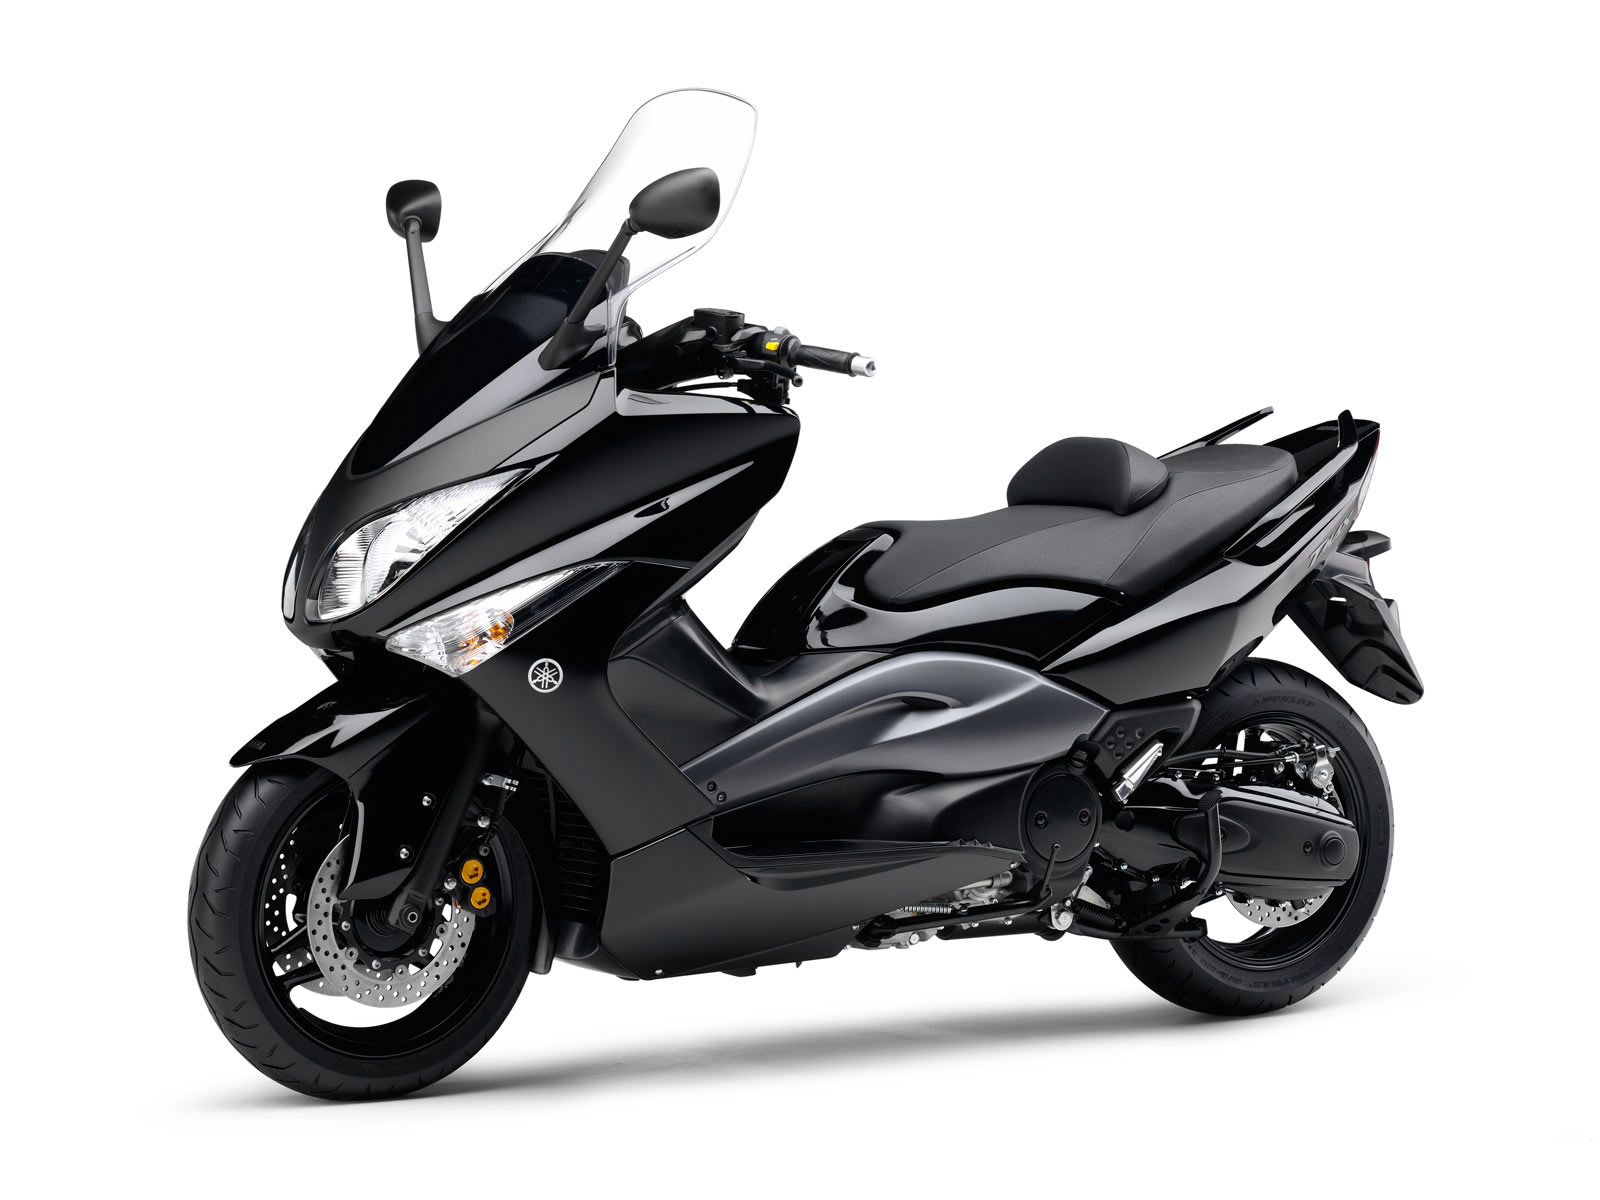 2008 yamaha tmax scooter pictures insurance specs super moto and sexy girls. Black Bedroom Furniture Sets. Home Design Ideas